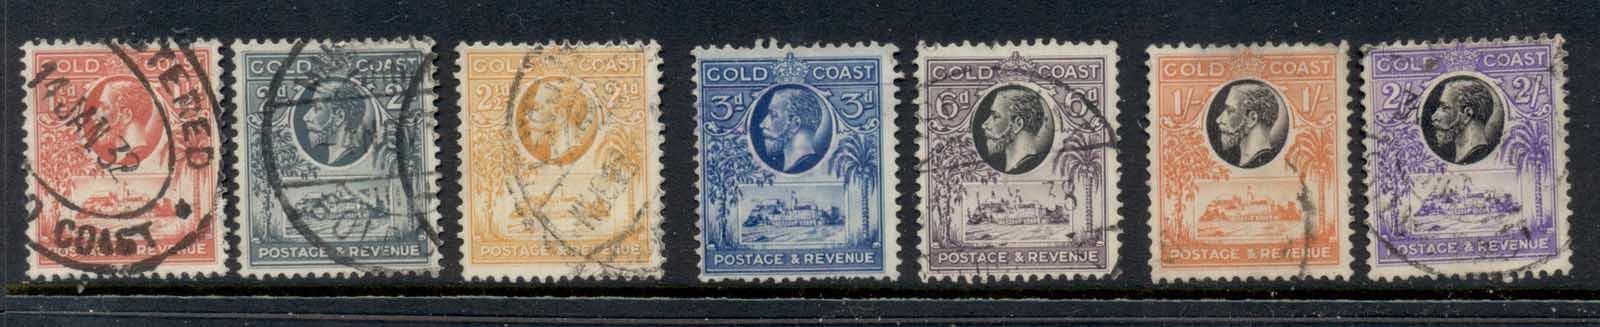 Gold Coast KGV Pictorials, Christianborg Castle Asst (faults, 1/- hinge thin) FU